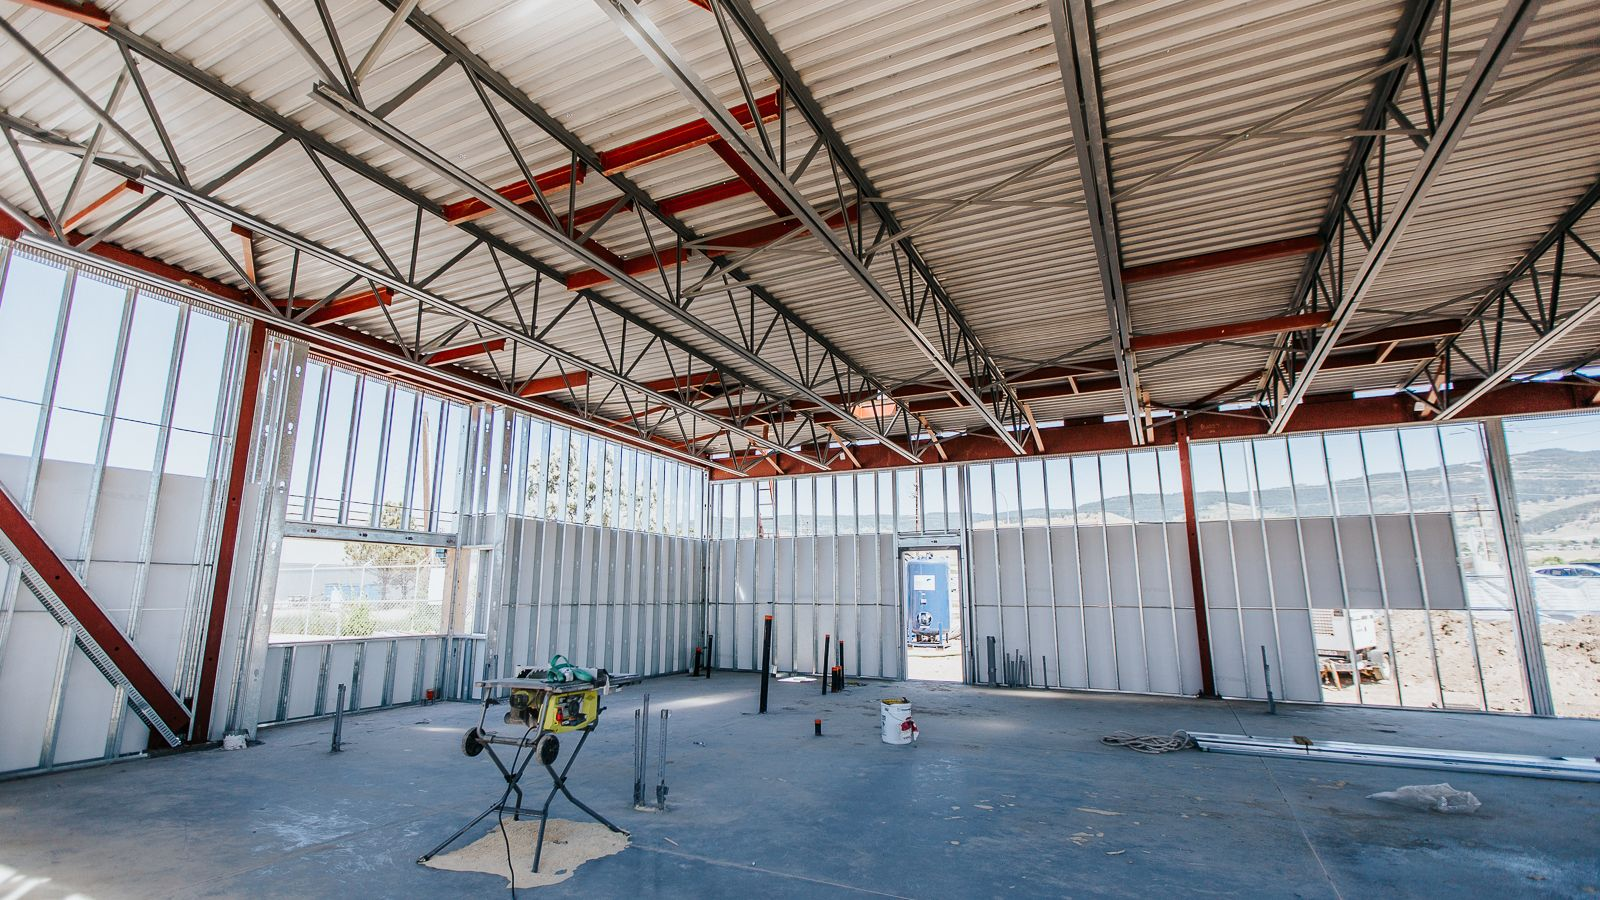 A large room with steel framing installed by Kelco Drywall Ltd, where safety is the top priority